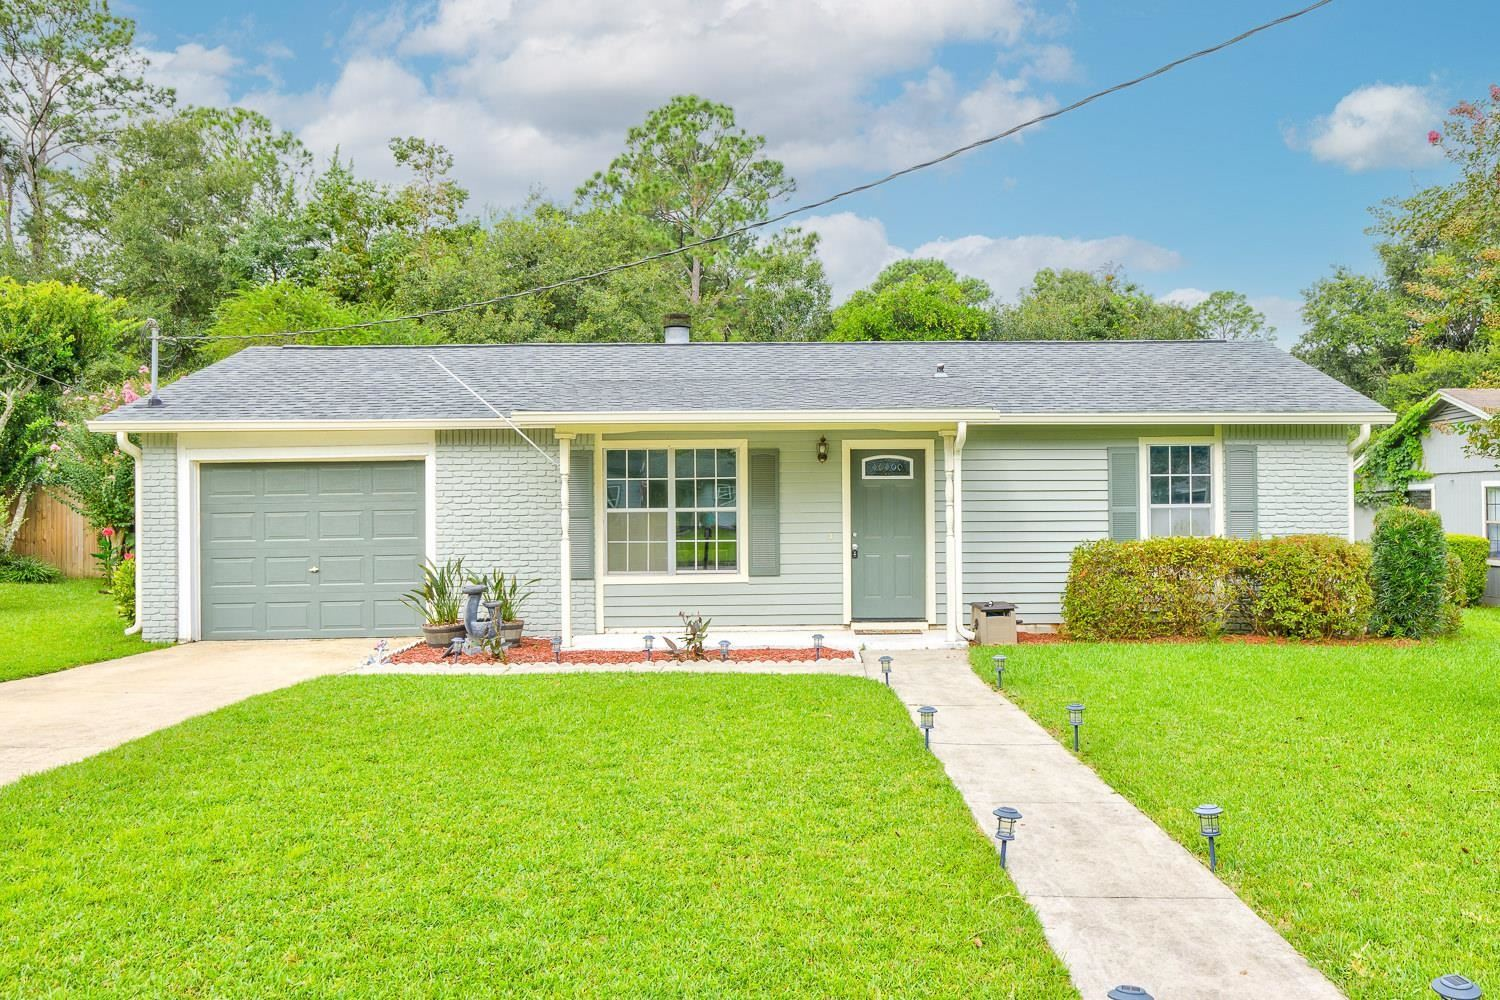 Photo of 3224 Riddle Drive, TALLAHASSEE, FL 32309 (MLS # 337363)